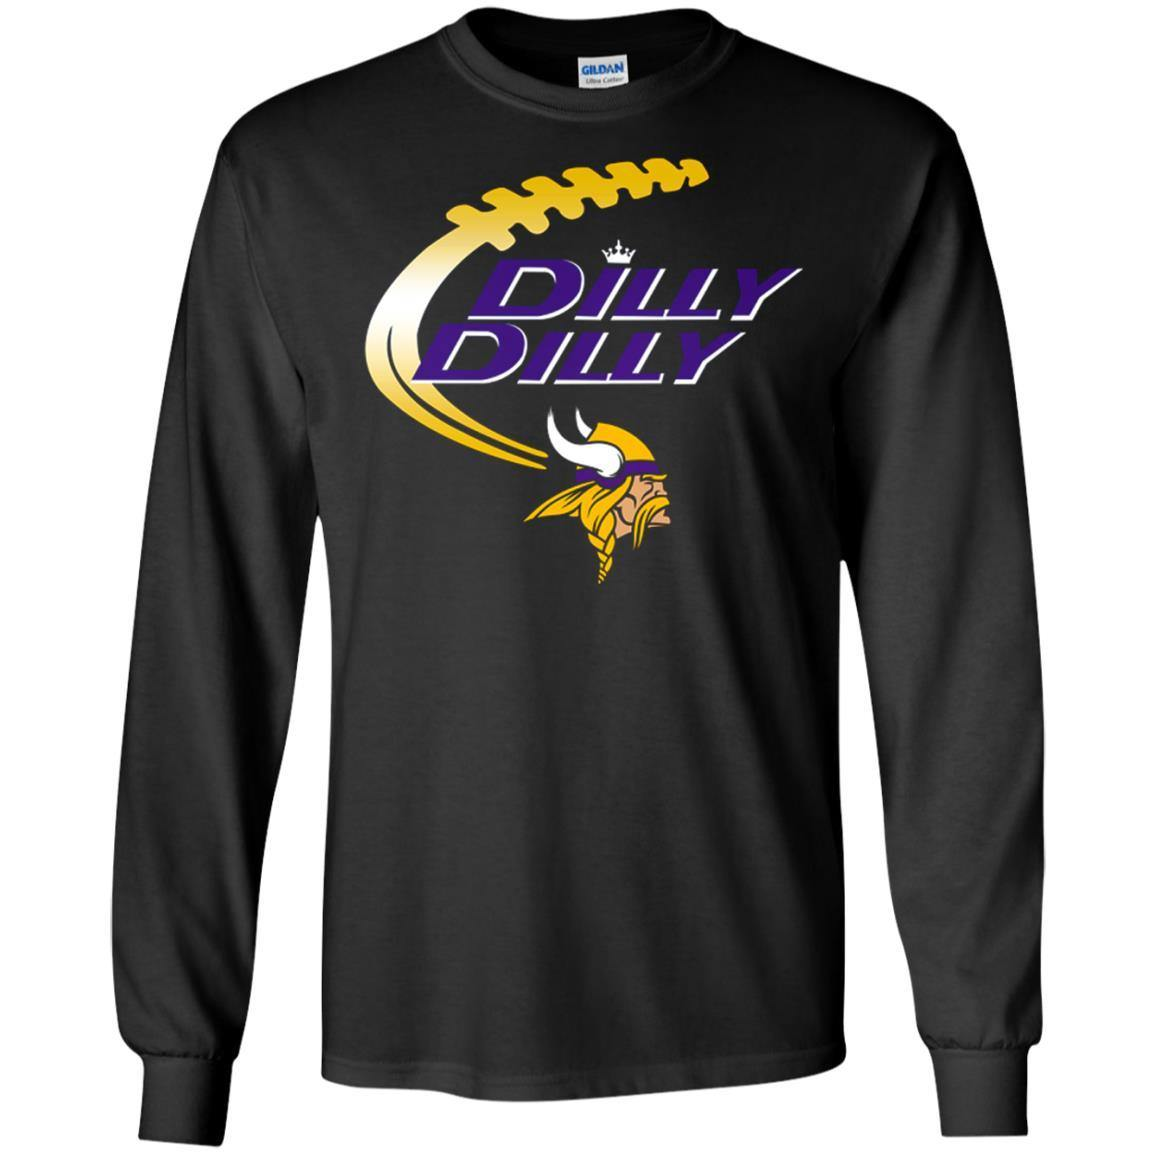 Dilly Dilly Minnesota Vikings Shirt – Hoodie – Long Sleeve – Sweatshirts